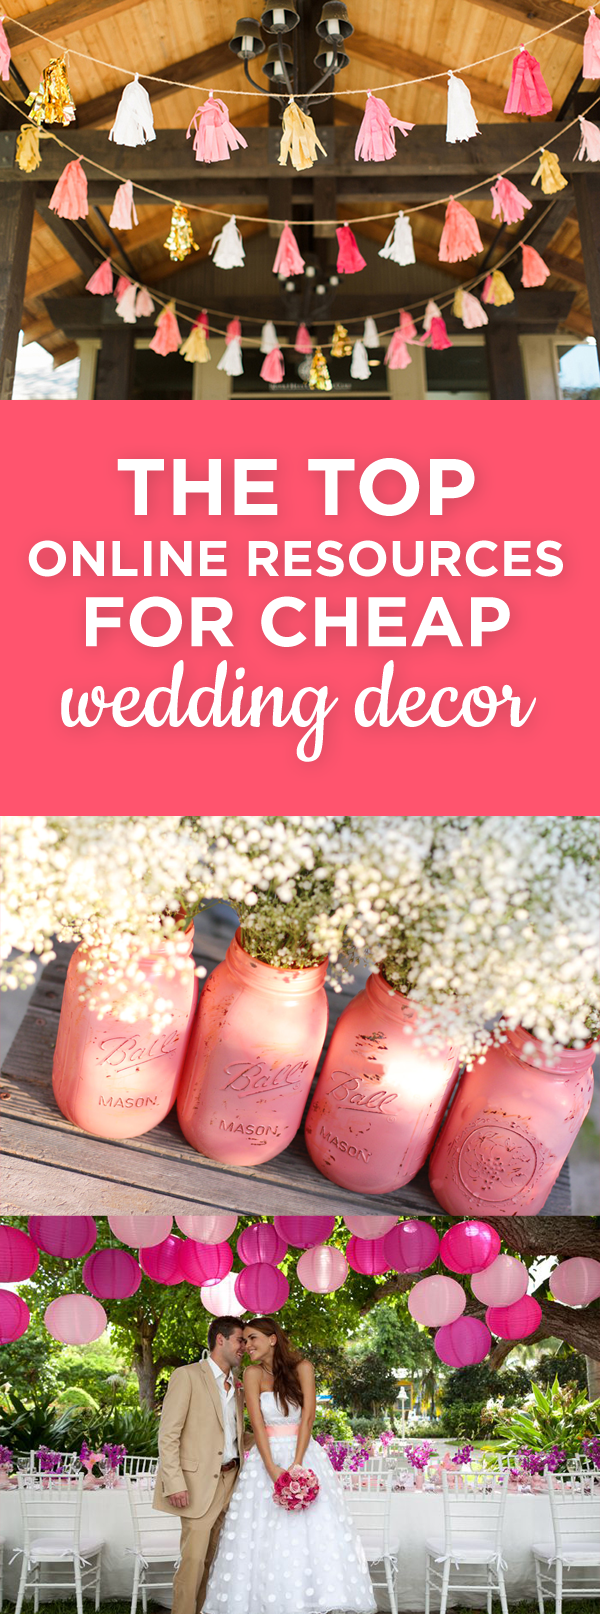 The Top Online Resources for Cheap Wedding Decor | Weddings, Wedding ...